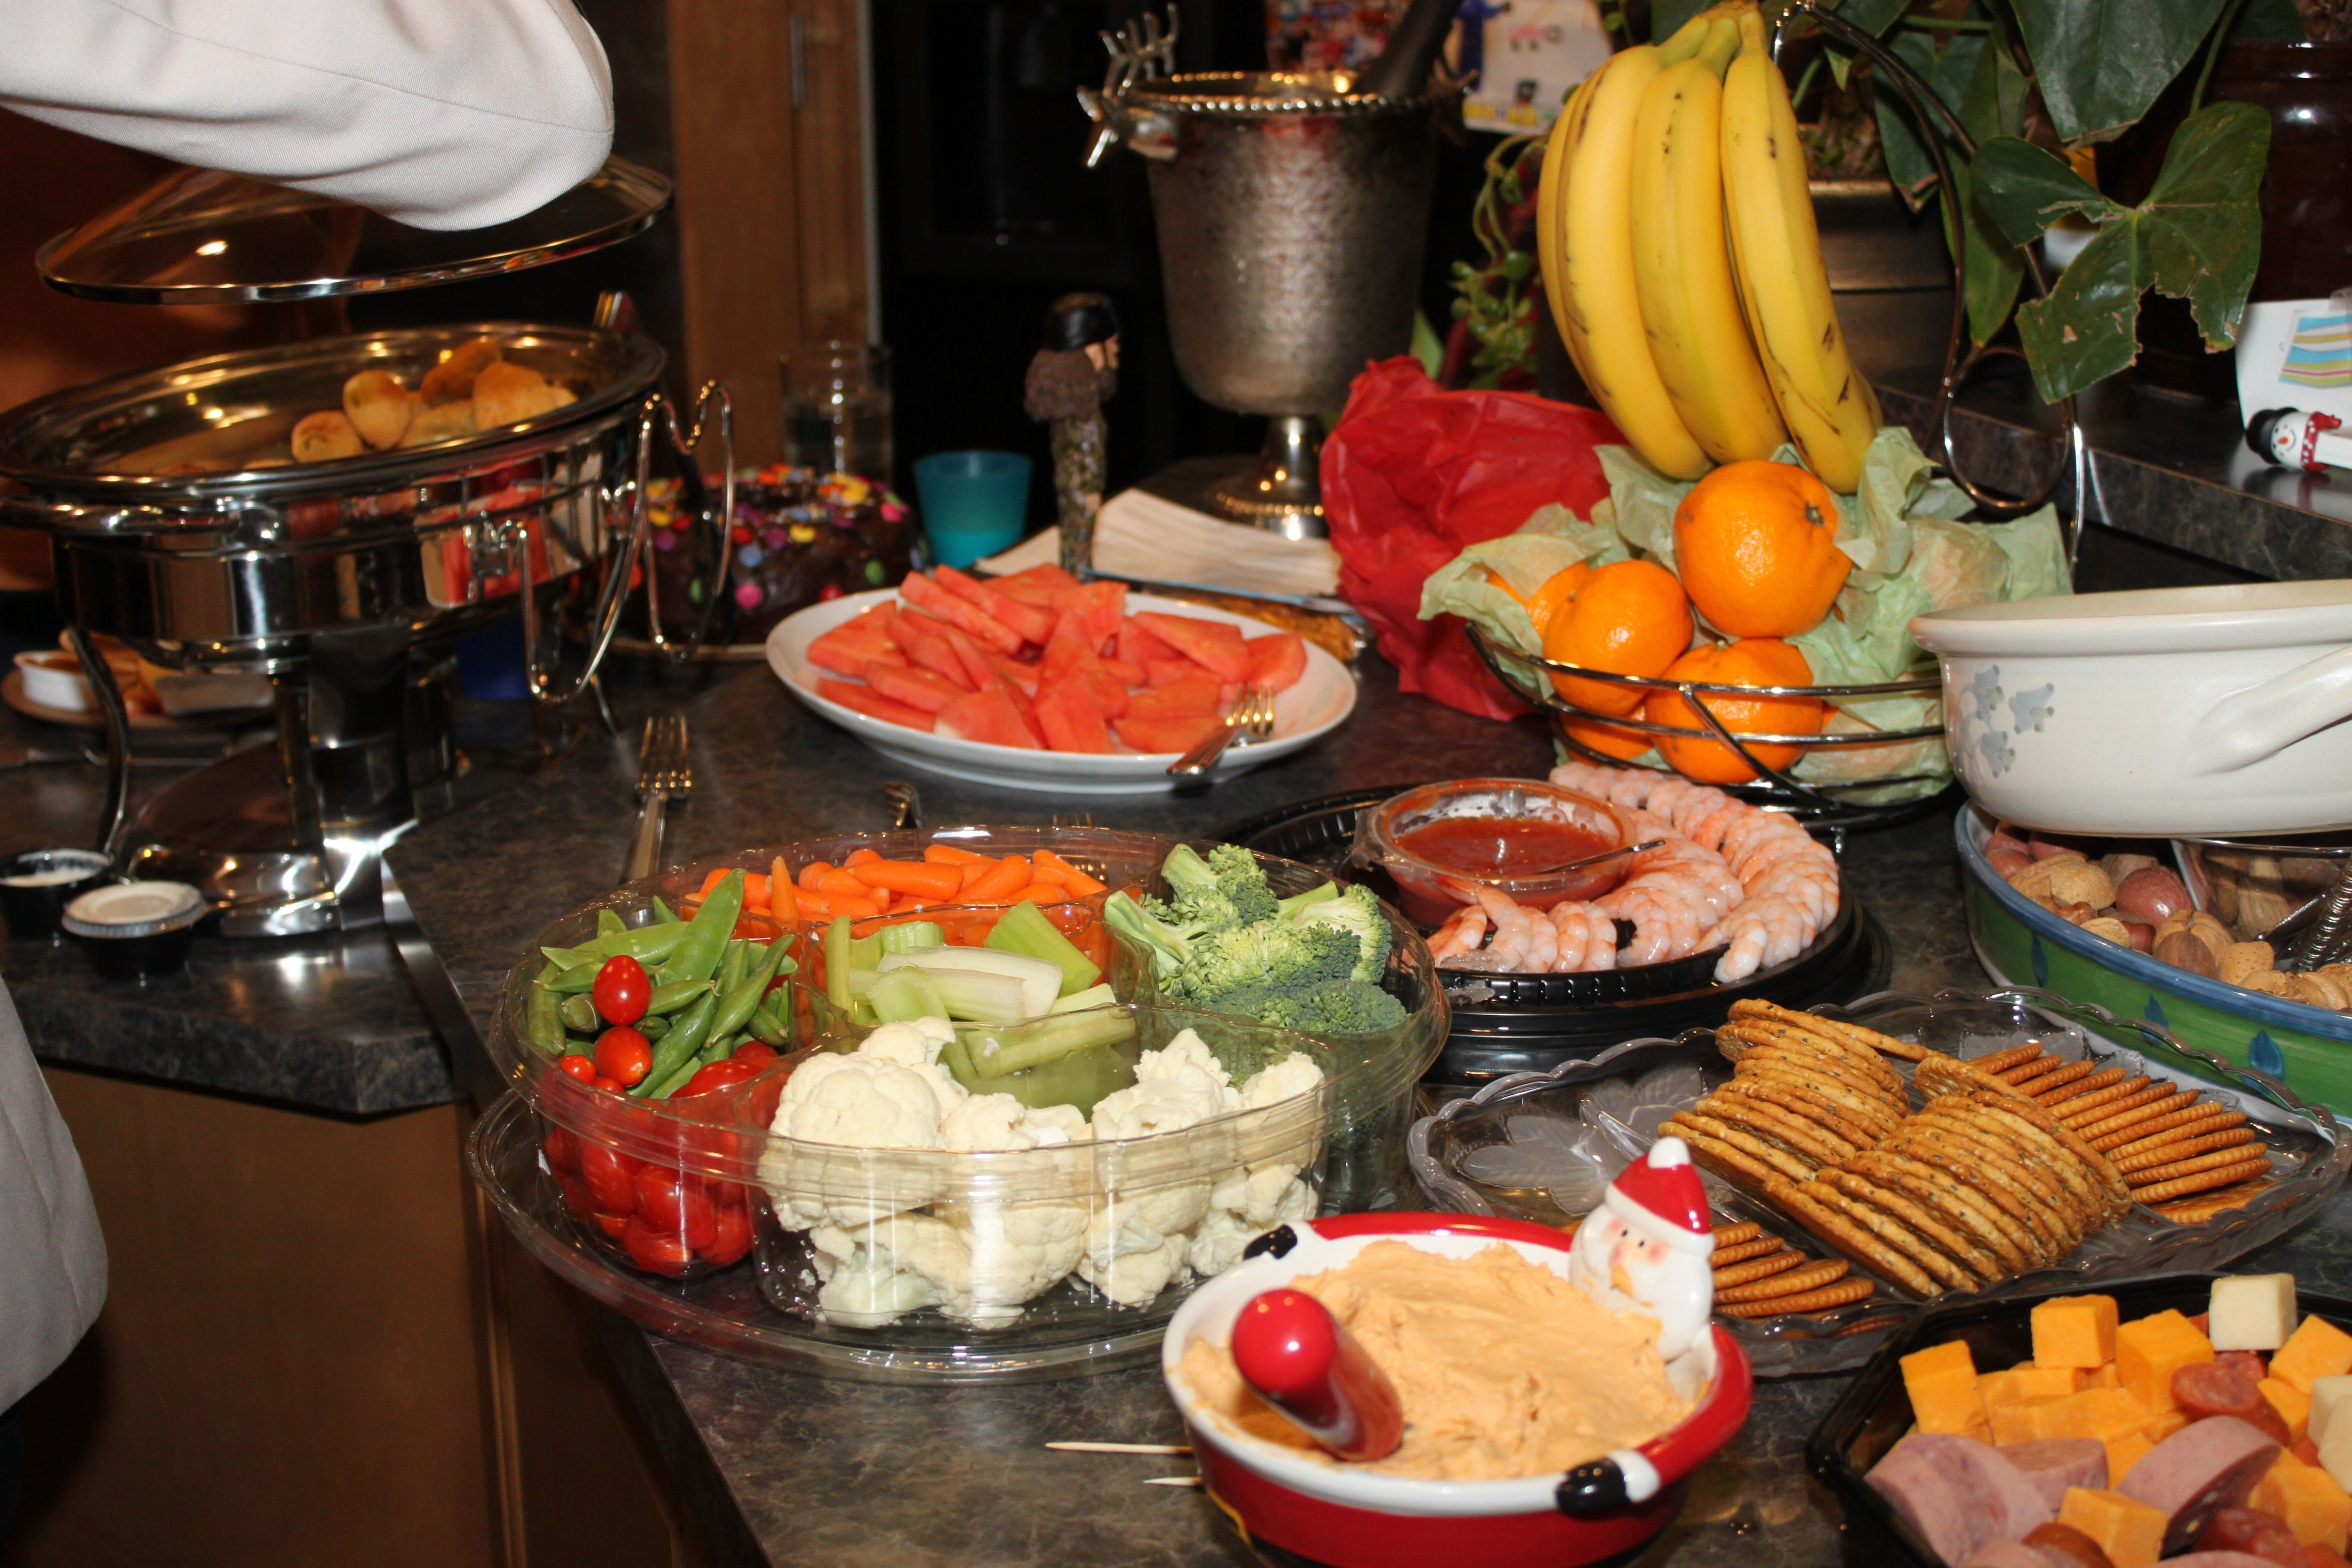 10 Stylish New Years Eve Dinner Ideas years eve family party ideas 4